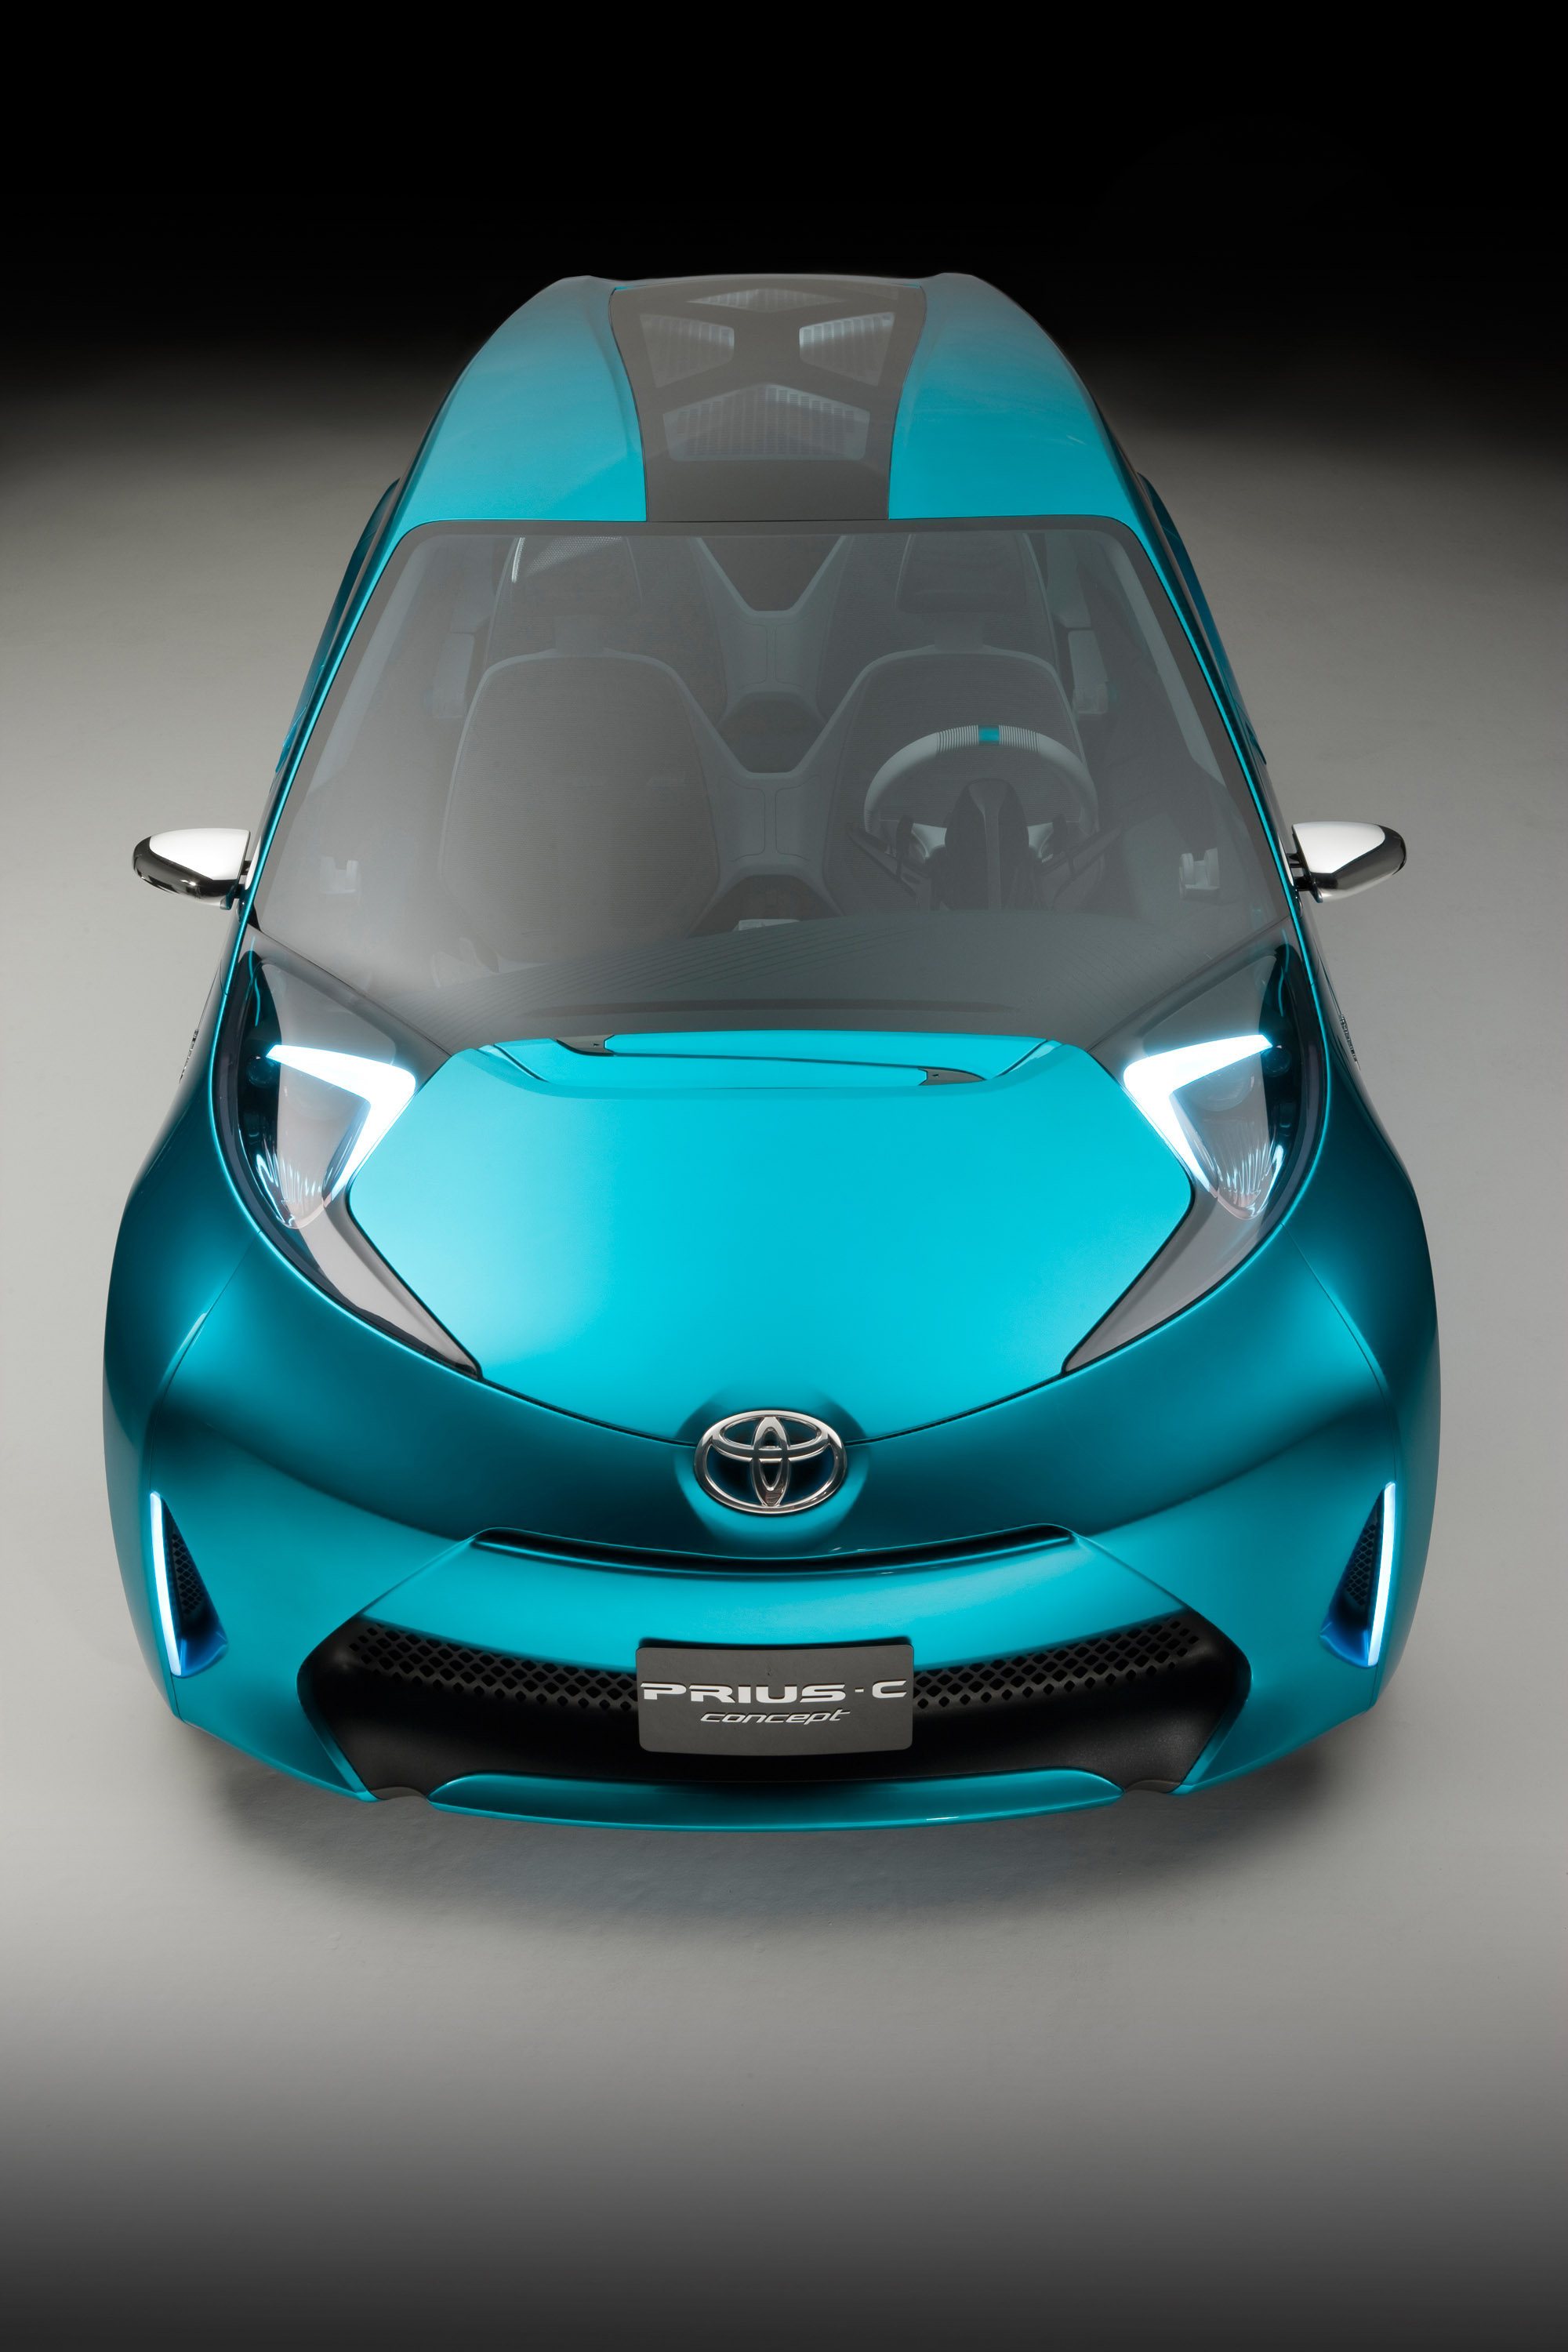 Toyota Prius Concept Cars HD Wallpapers & Pictures